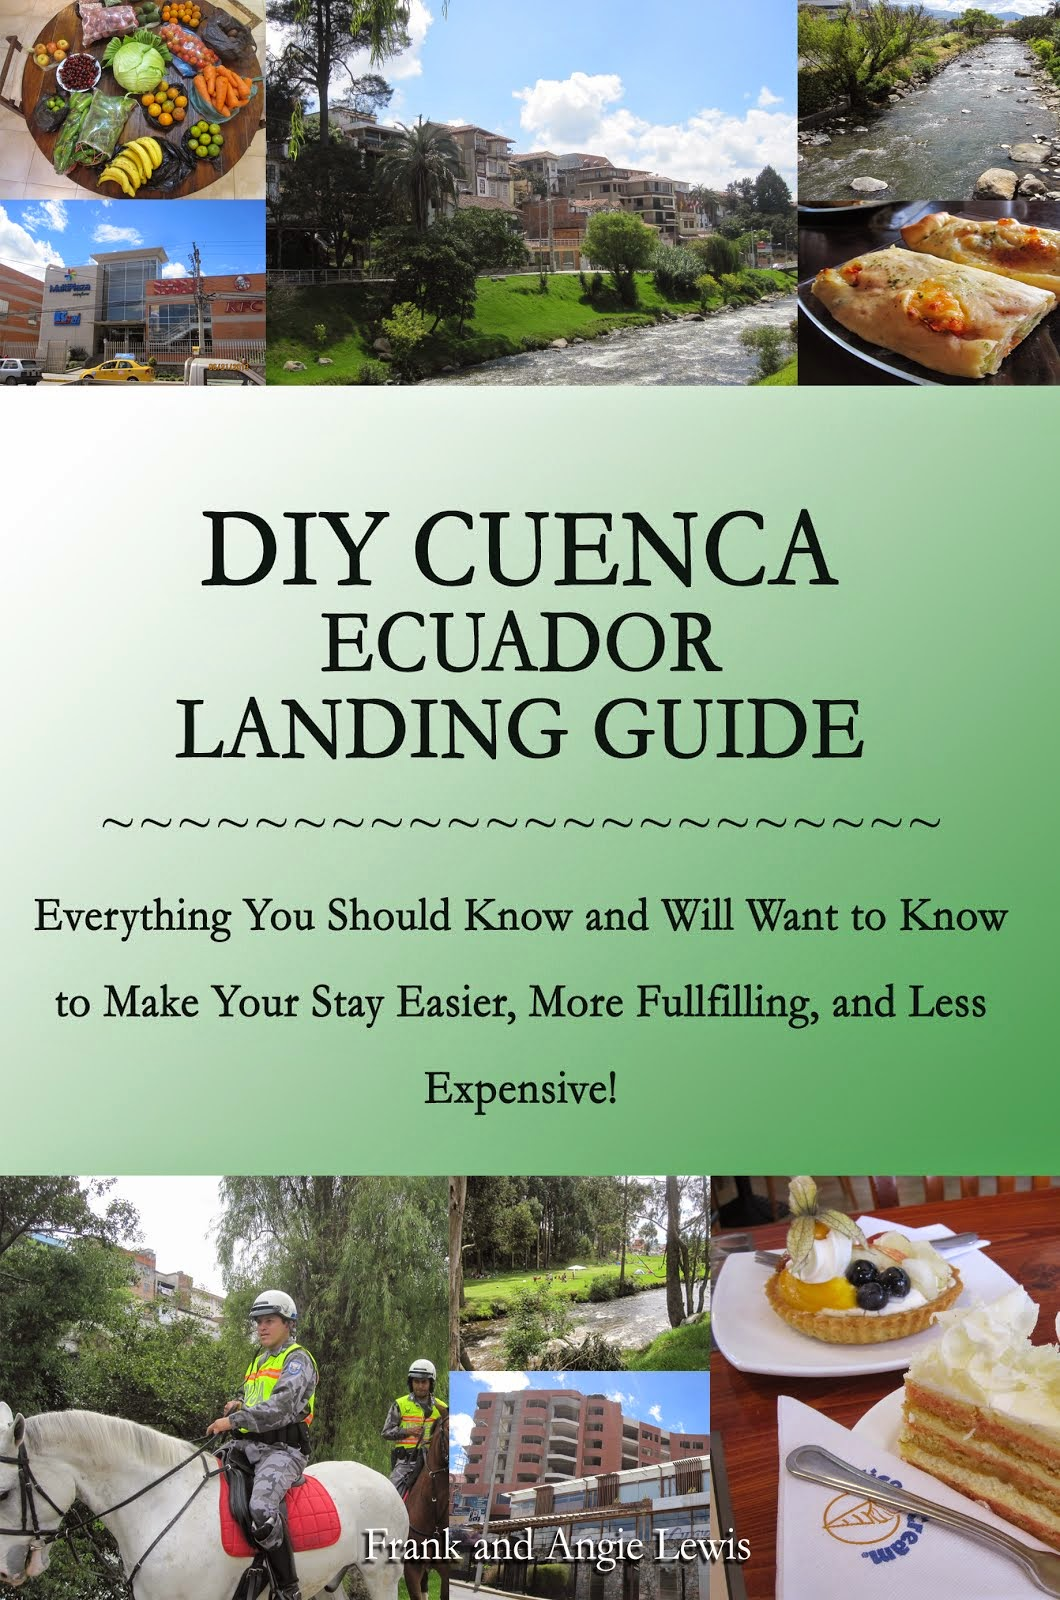 DIY Cuenca Landing Guide! Available in Paperback and eBook!